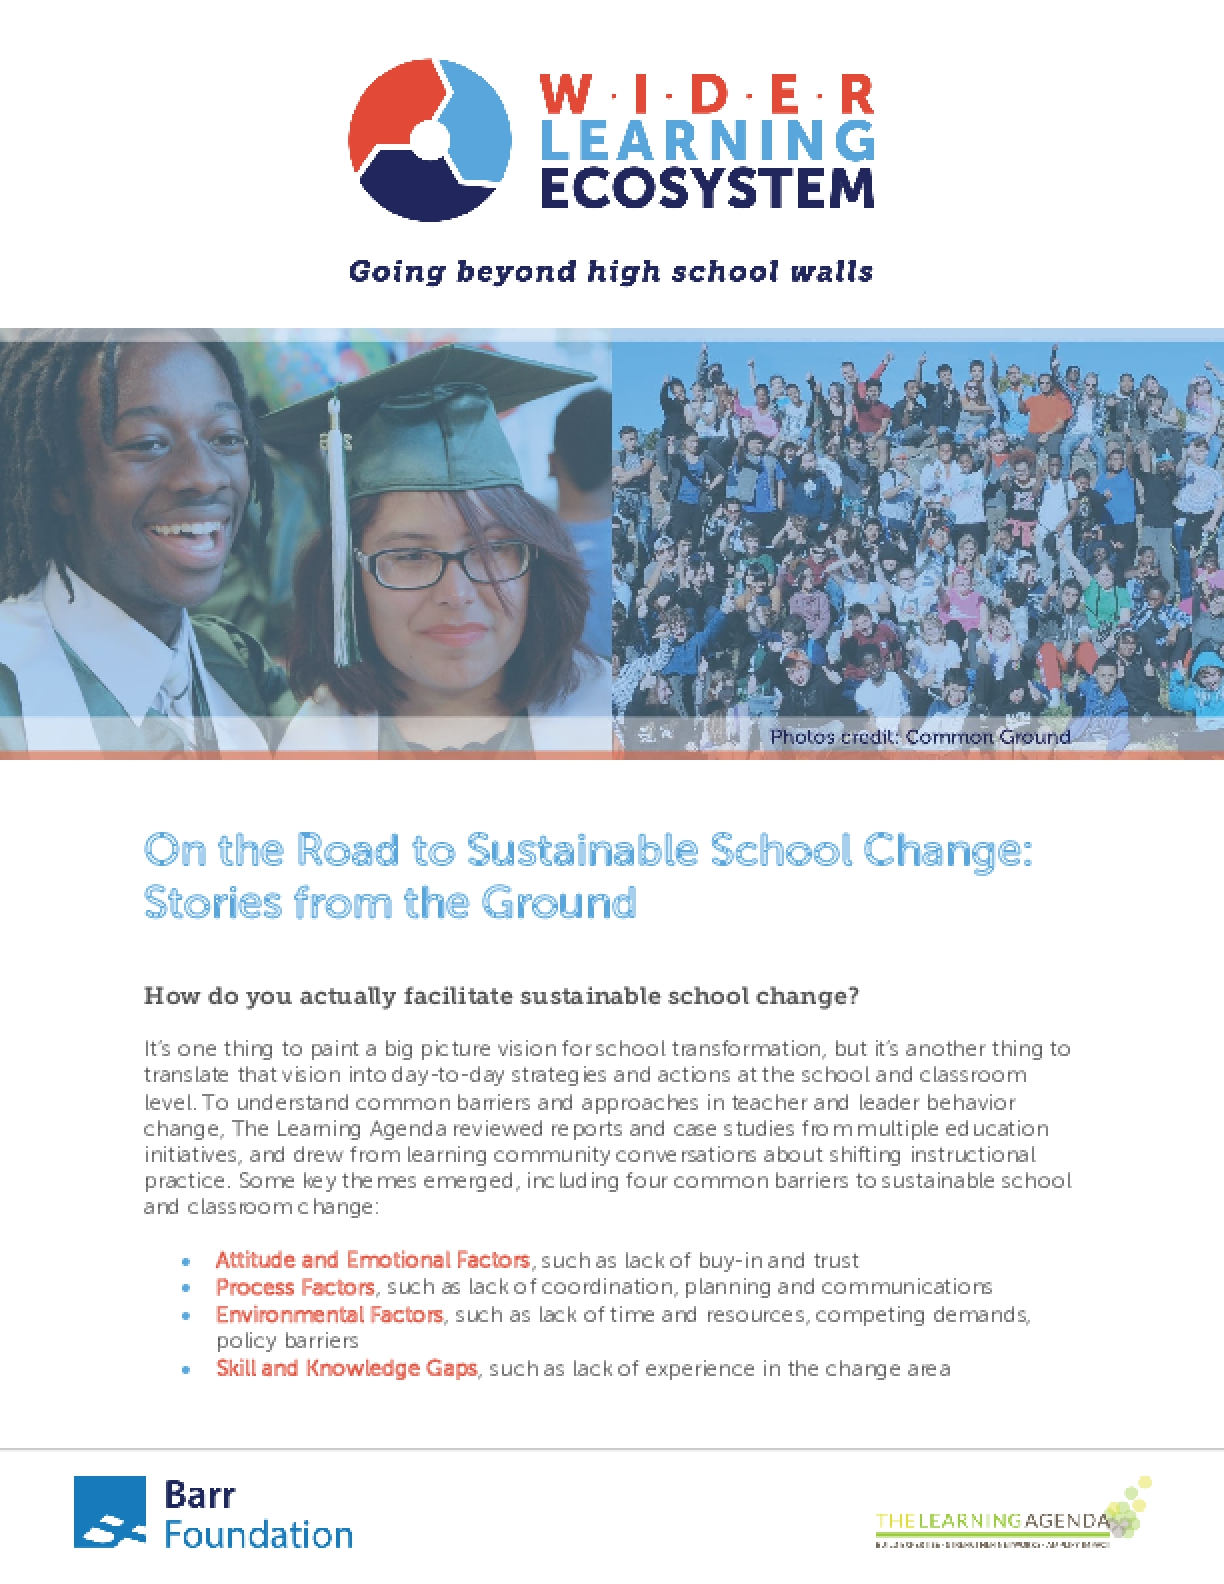 On the Road to Sustainable School Change: Stories from the Ground